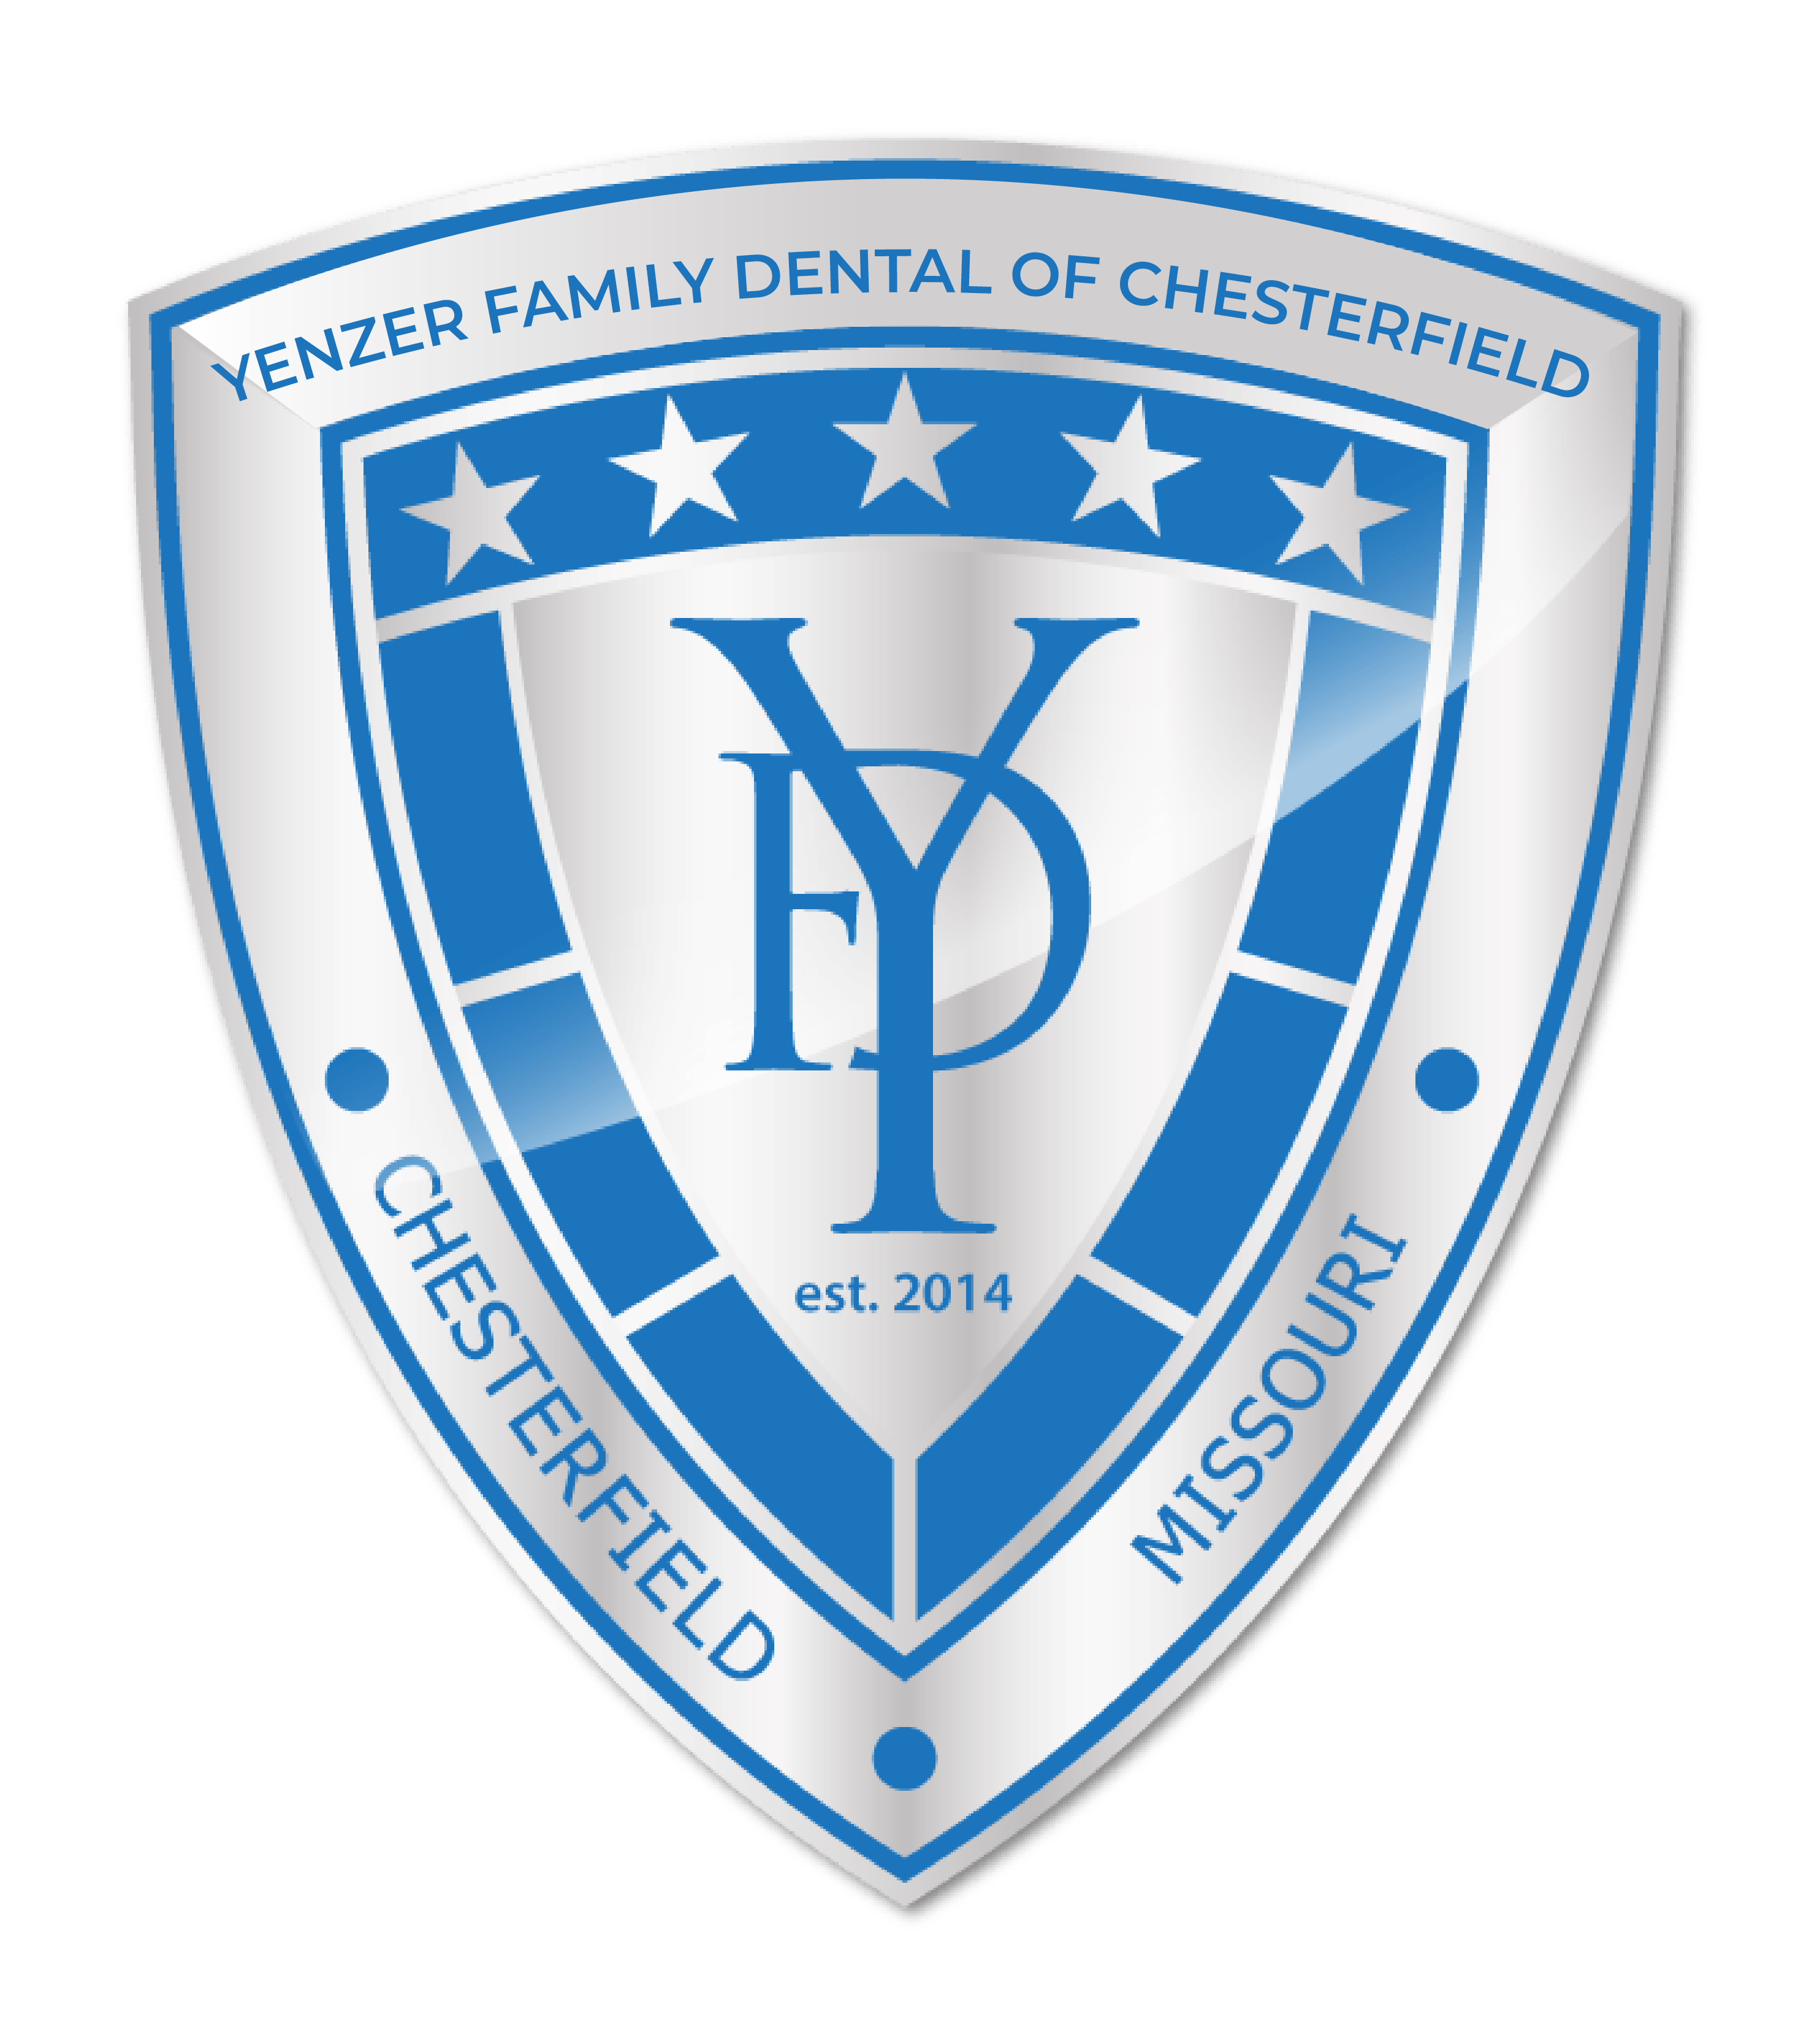 Yenzer Family Dental of Chesterfield logo